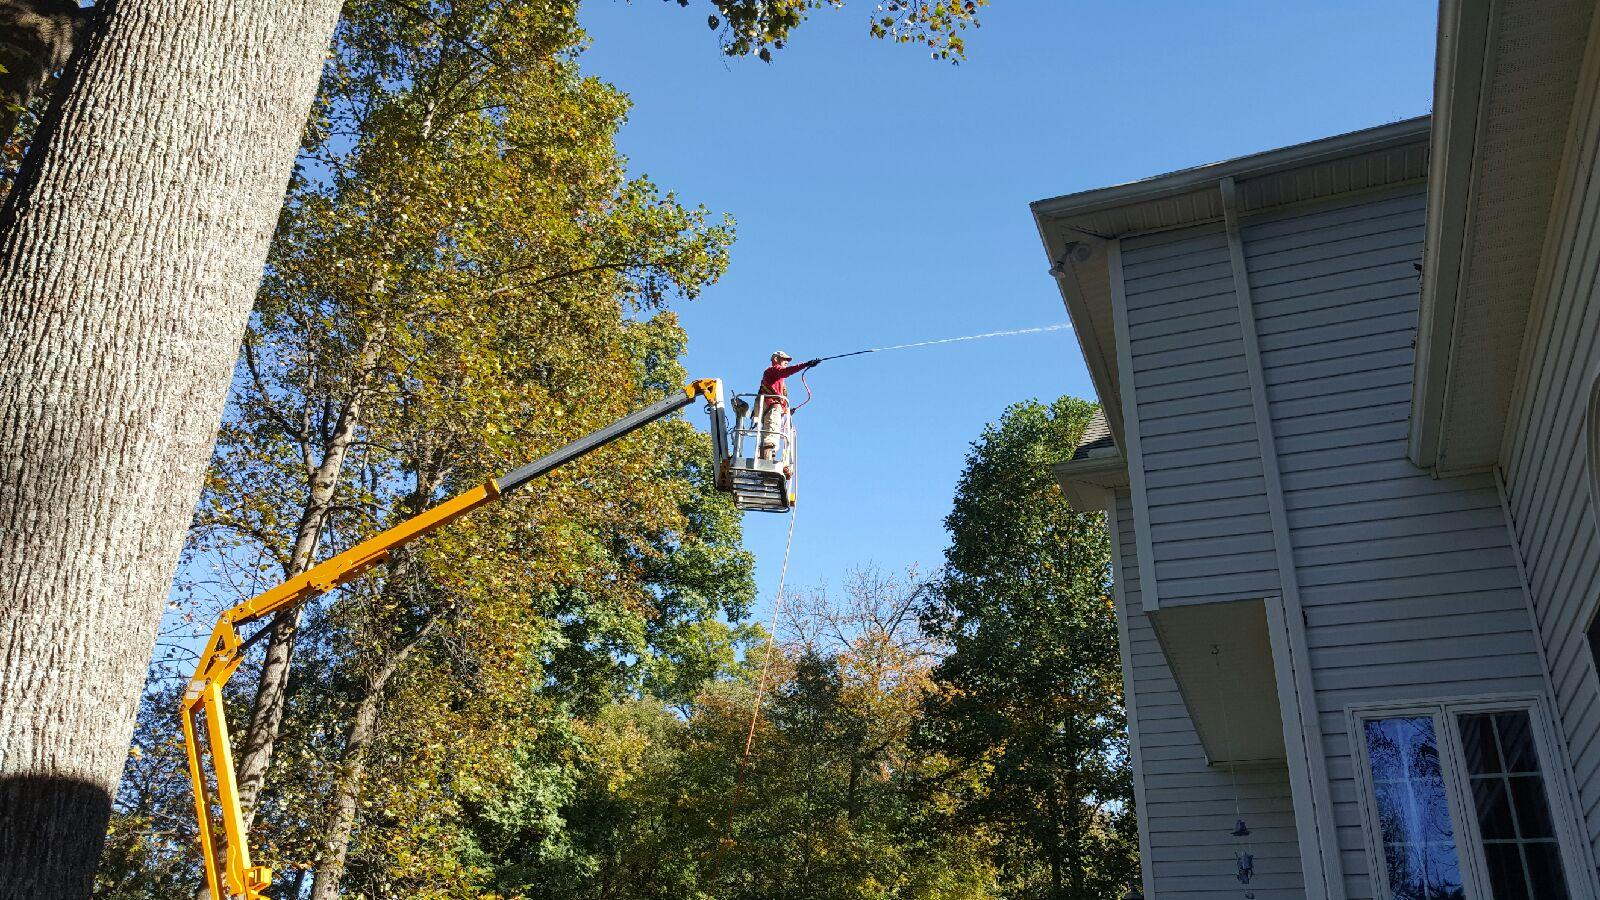 Boom Lift | Soft Wash Roof Company in Martinsburg WV